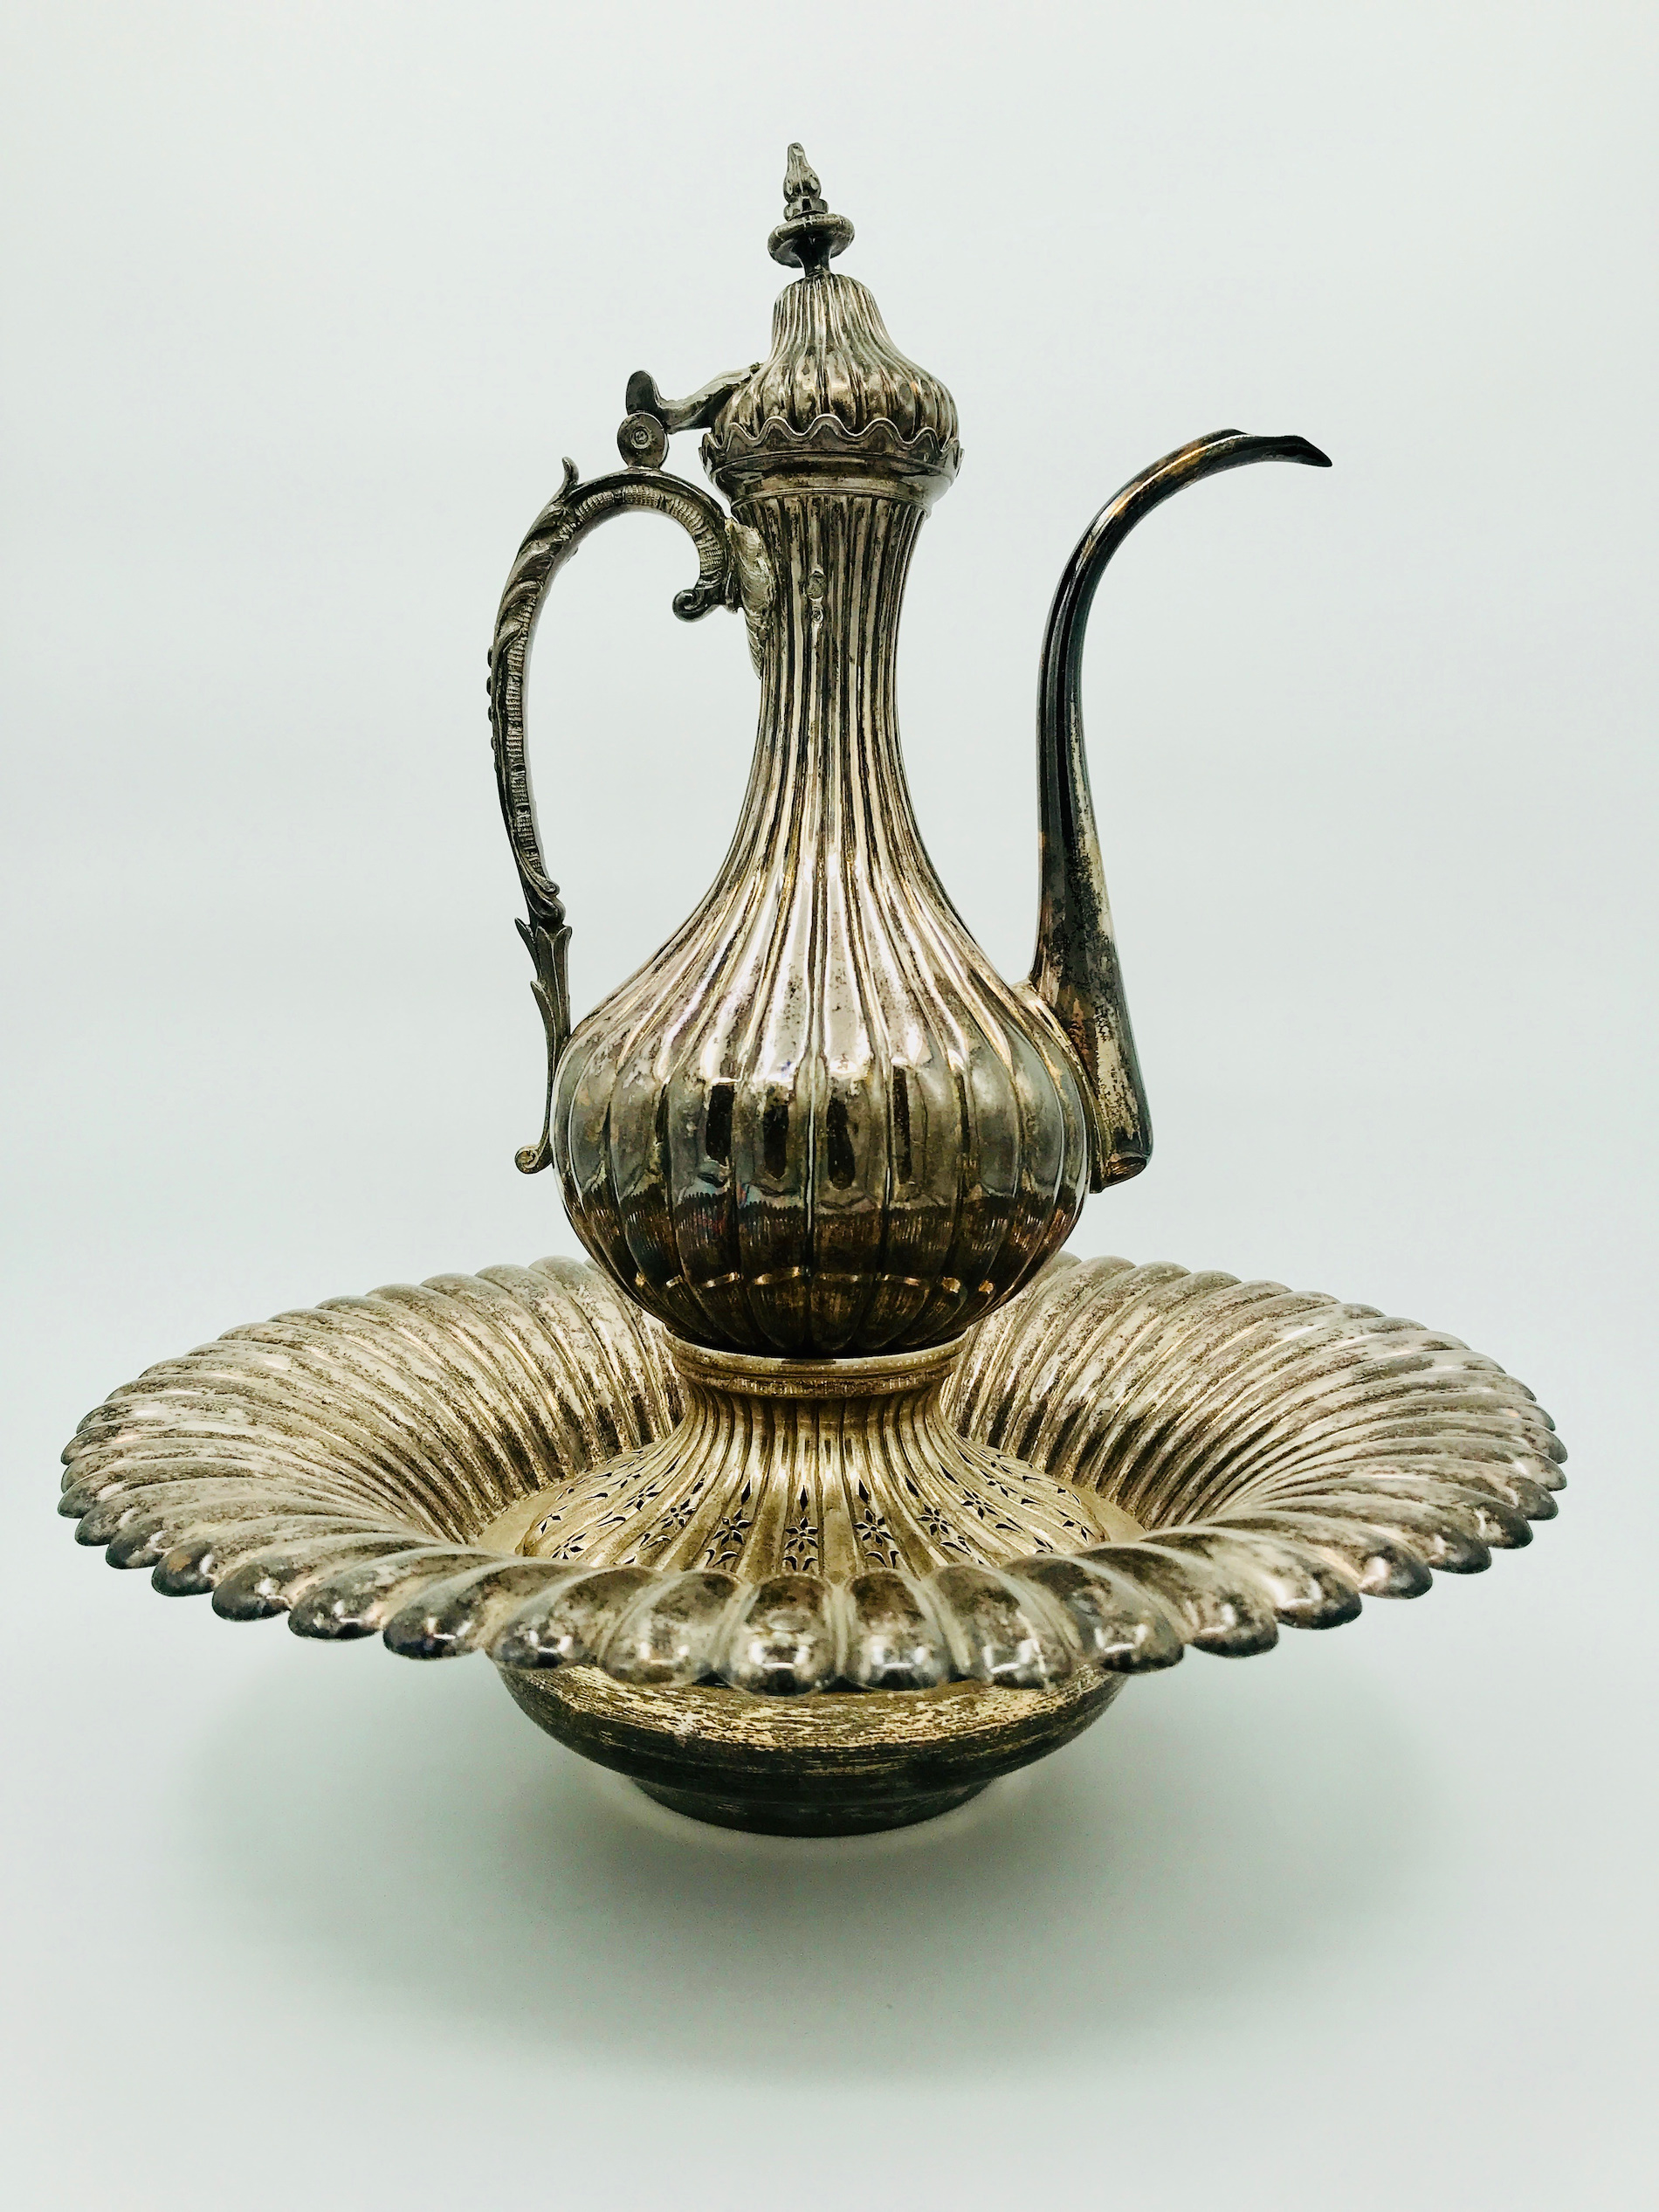 2.ONLINE ARTS OF ISLAMIC AND ORIENTALIST PAINTINGS AUCTION